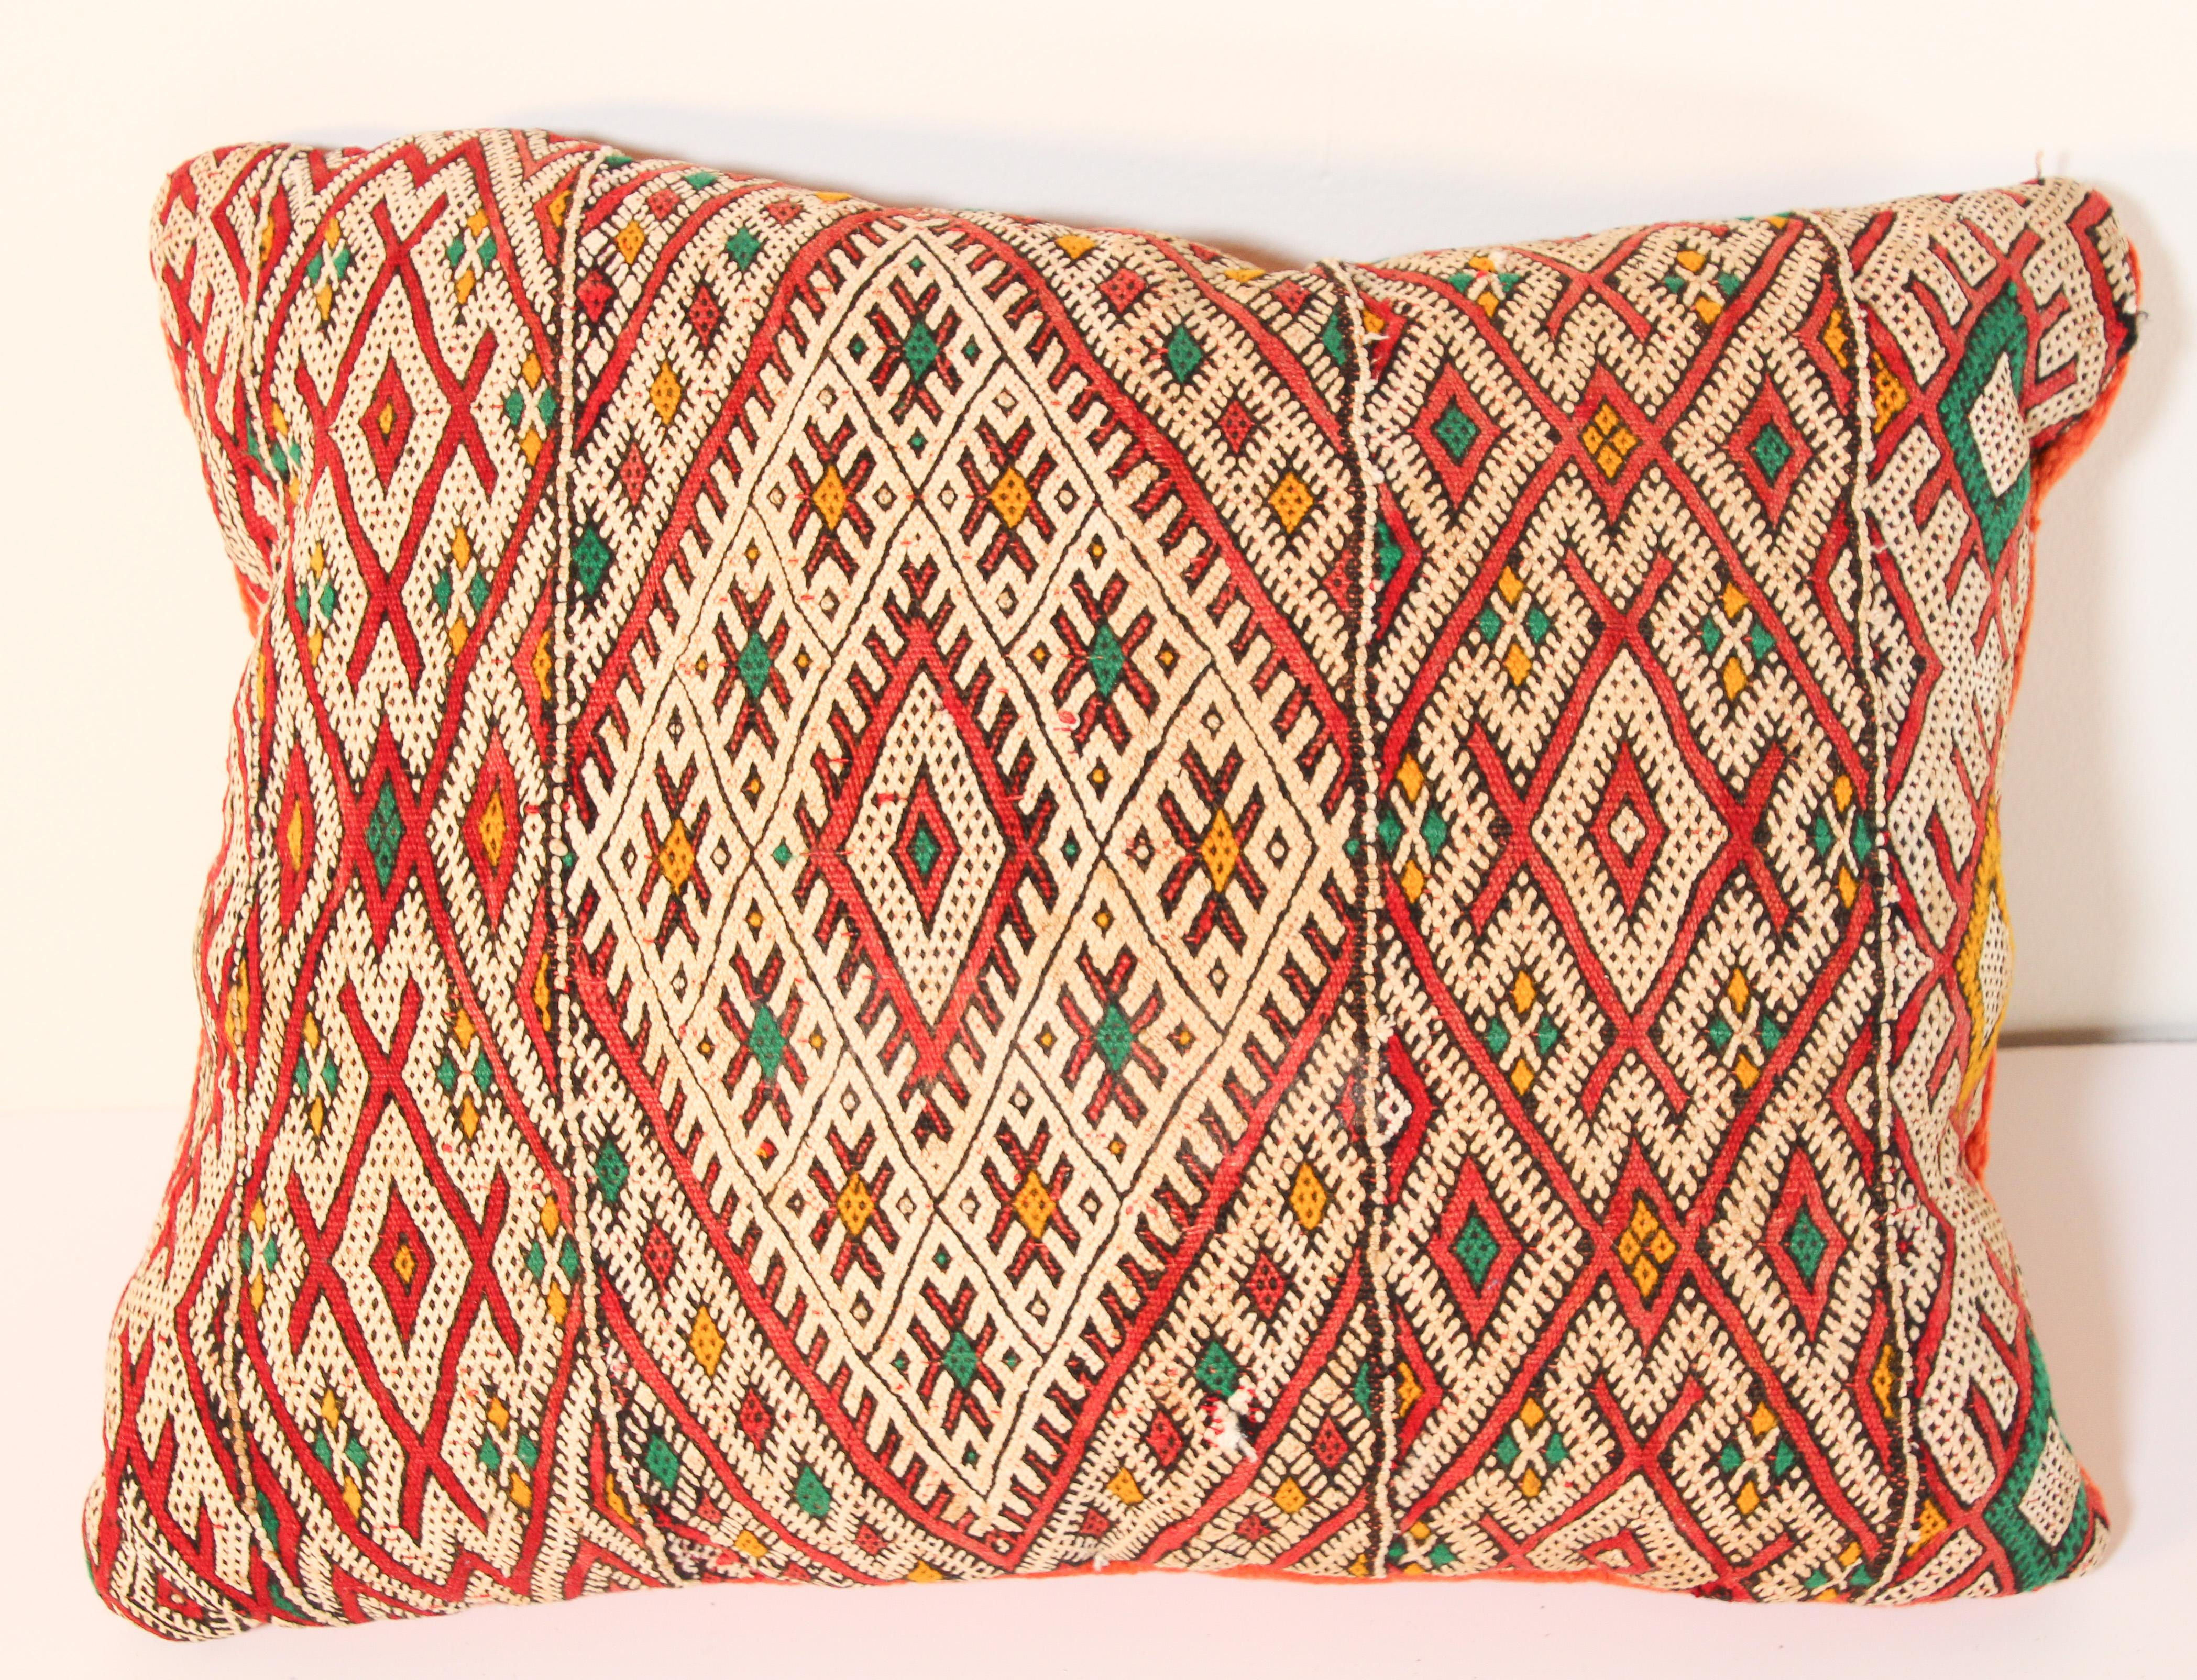 Handwoven Moroccan Berber Throw Pillow At 1stdibs